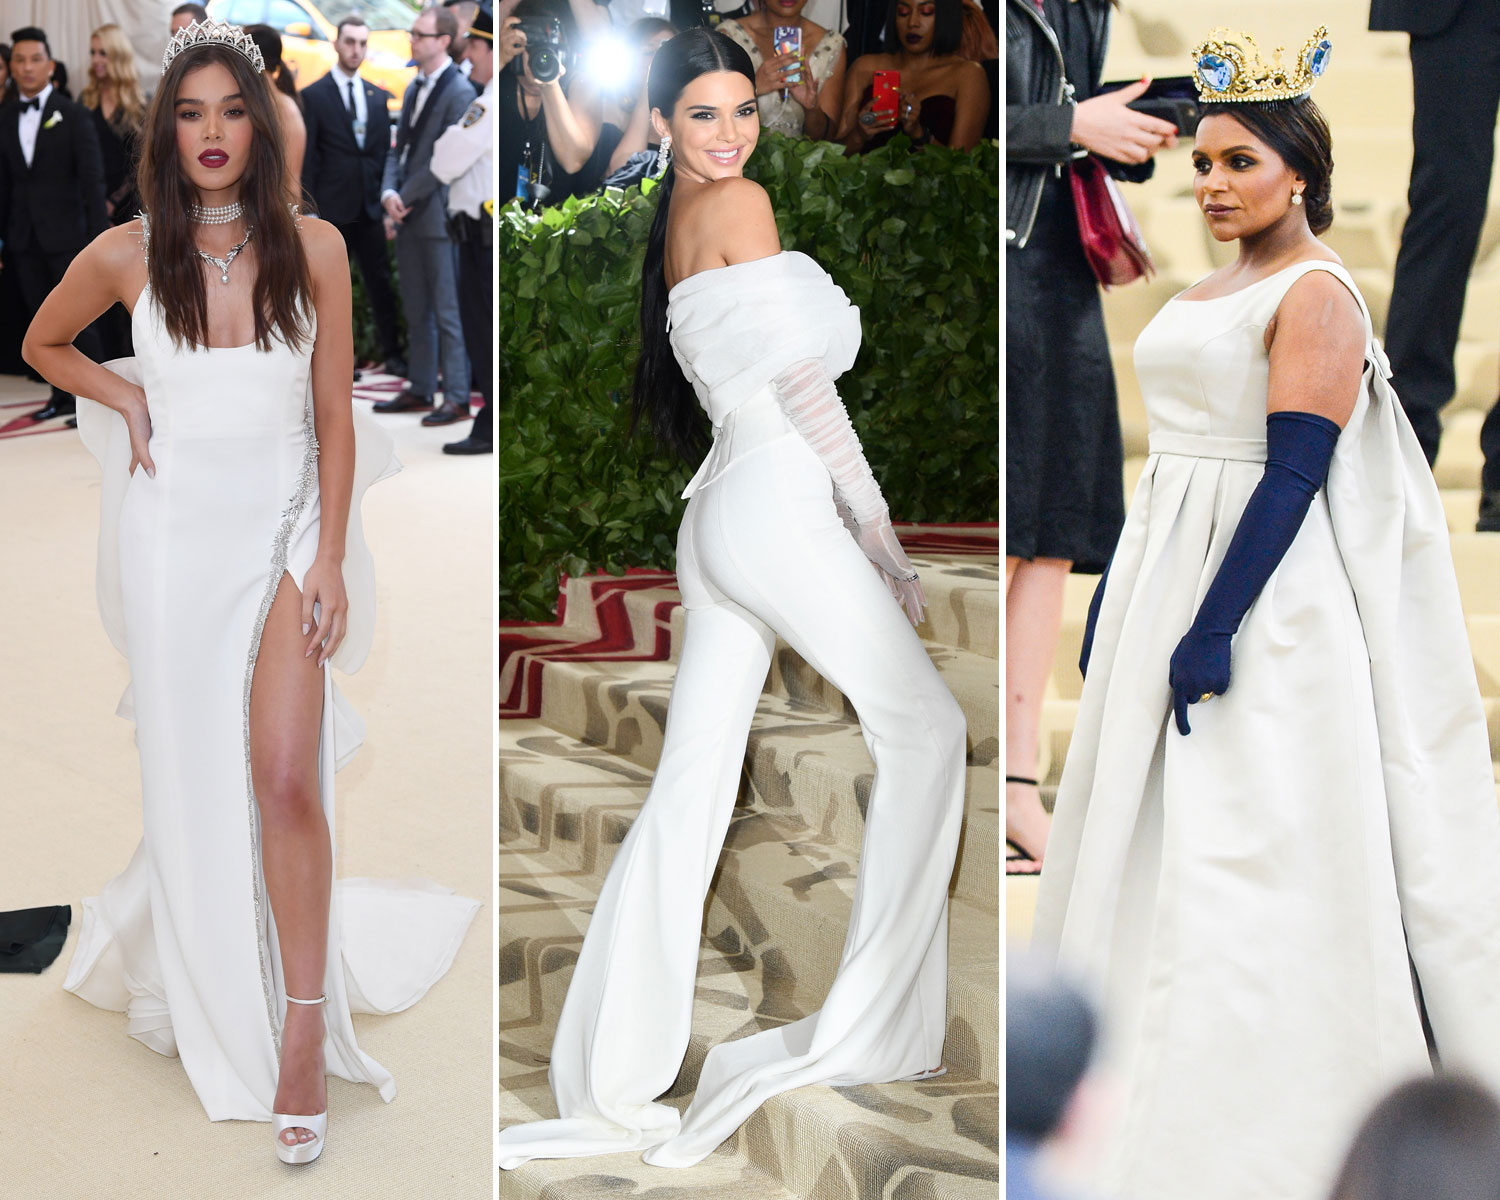 e8aca4ee 10 Ethereal, Bridal-Inspired Looks on the Met Gala 2018 Red ...